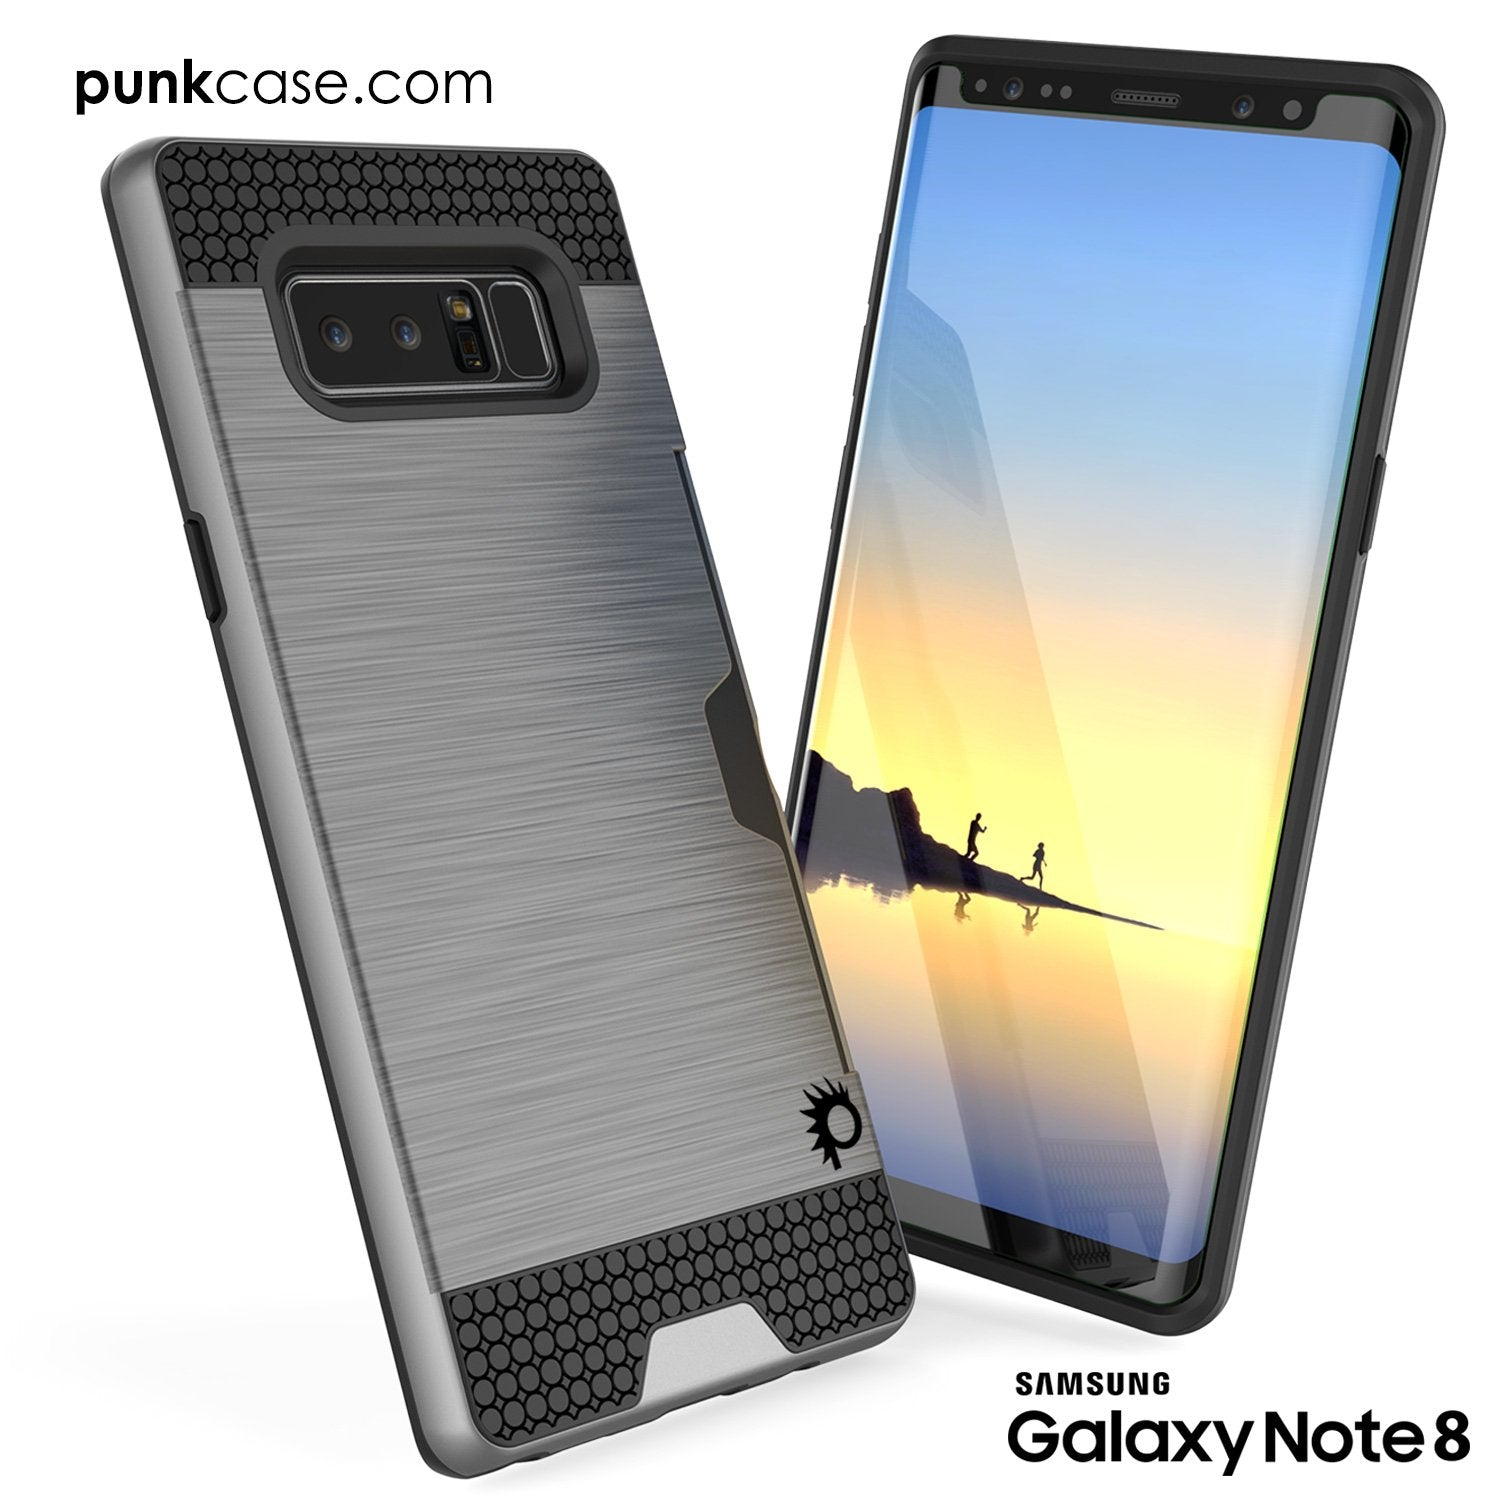 Galaxy Note 8 Case, PUNKcase [SLOT Series] [Slim Fit] Dual-Layer Armor Cover w/Integrated Anti-Shock System, Credit Card Slot [Grey]